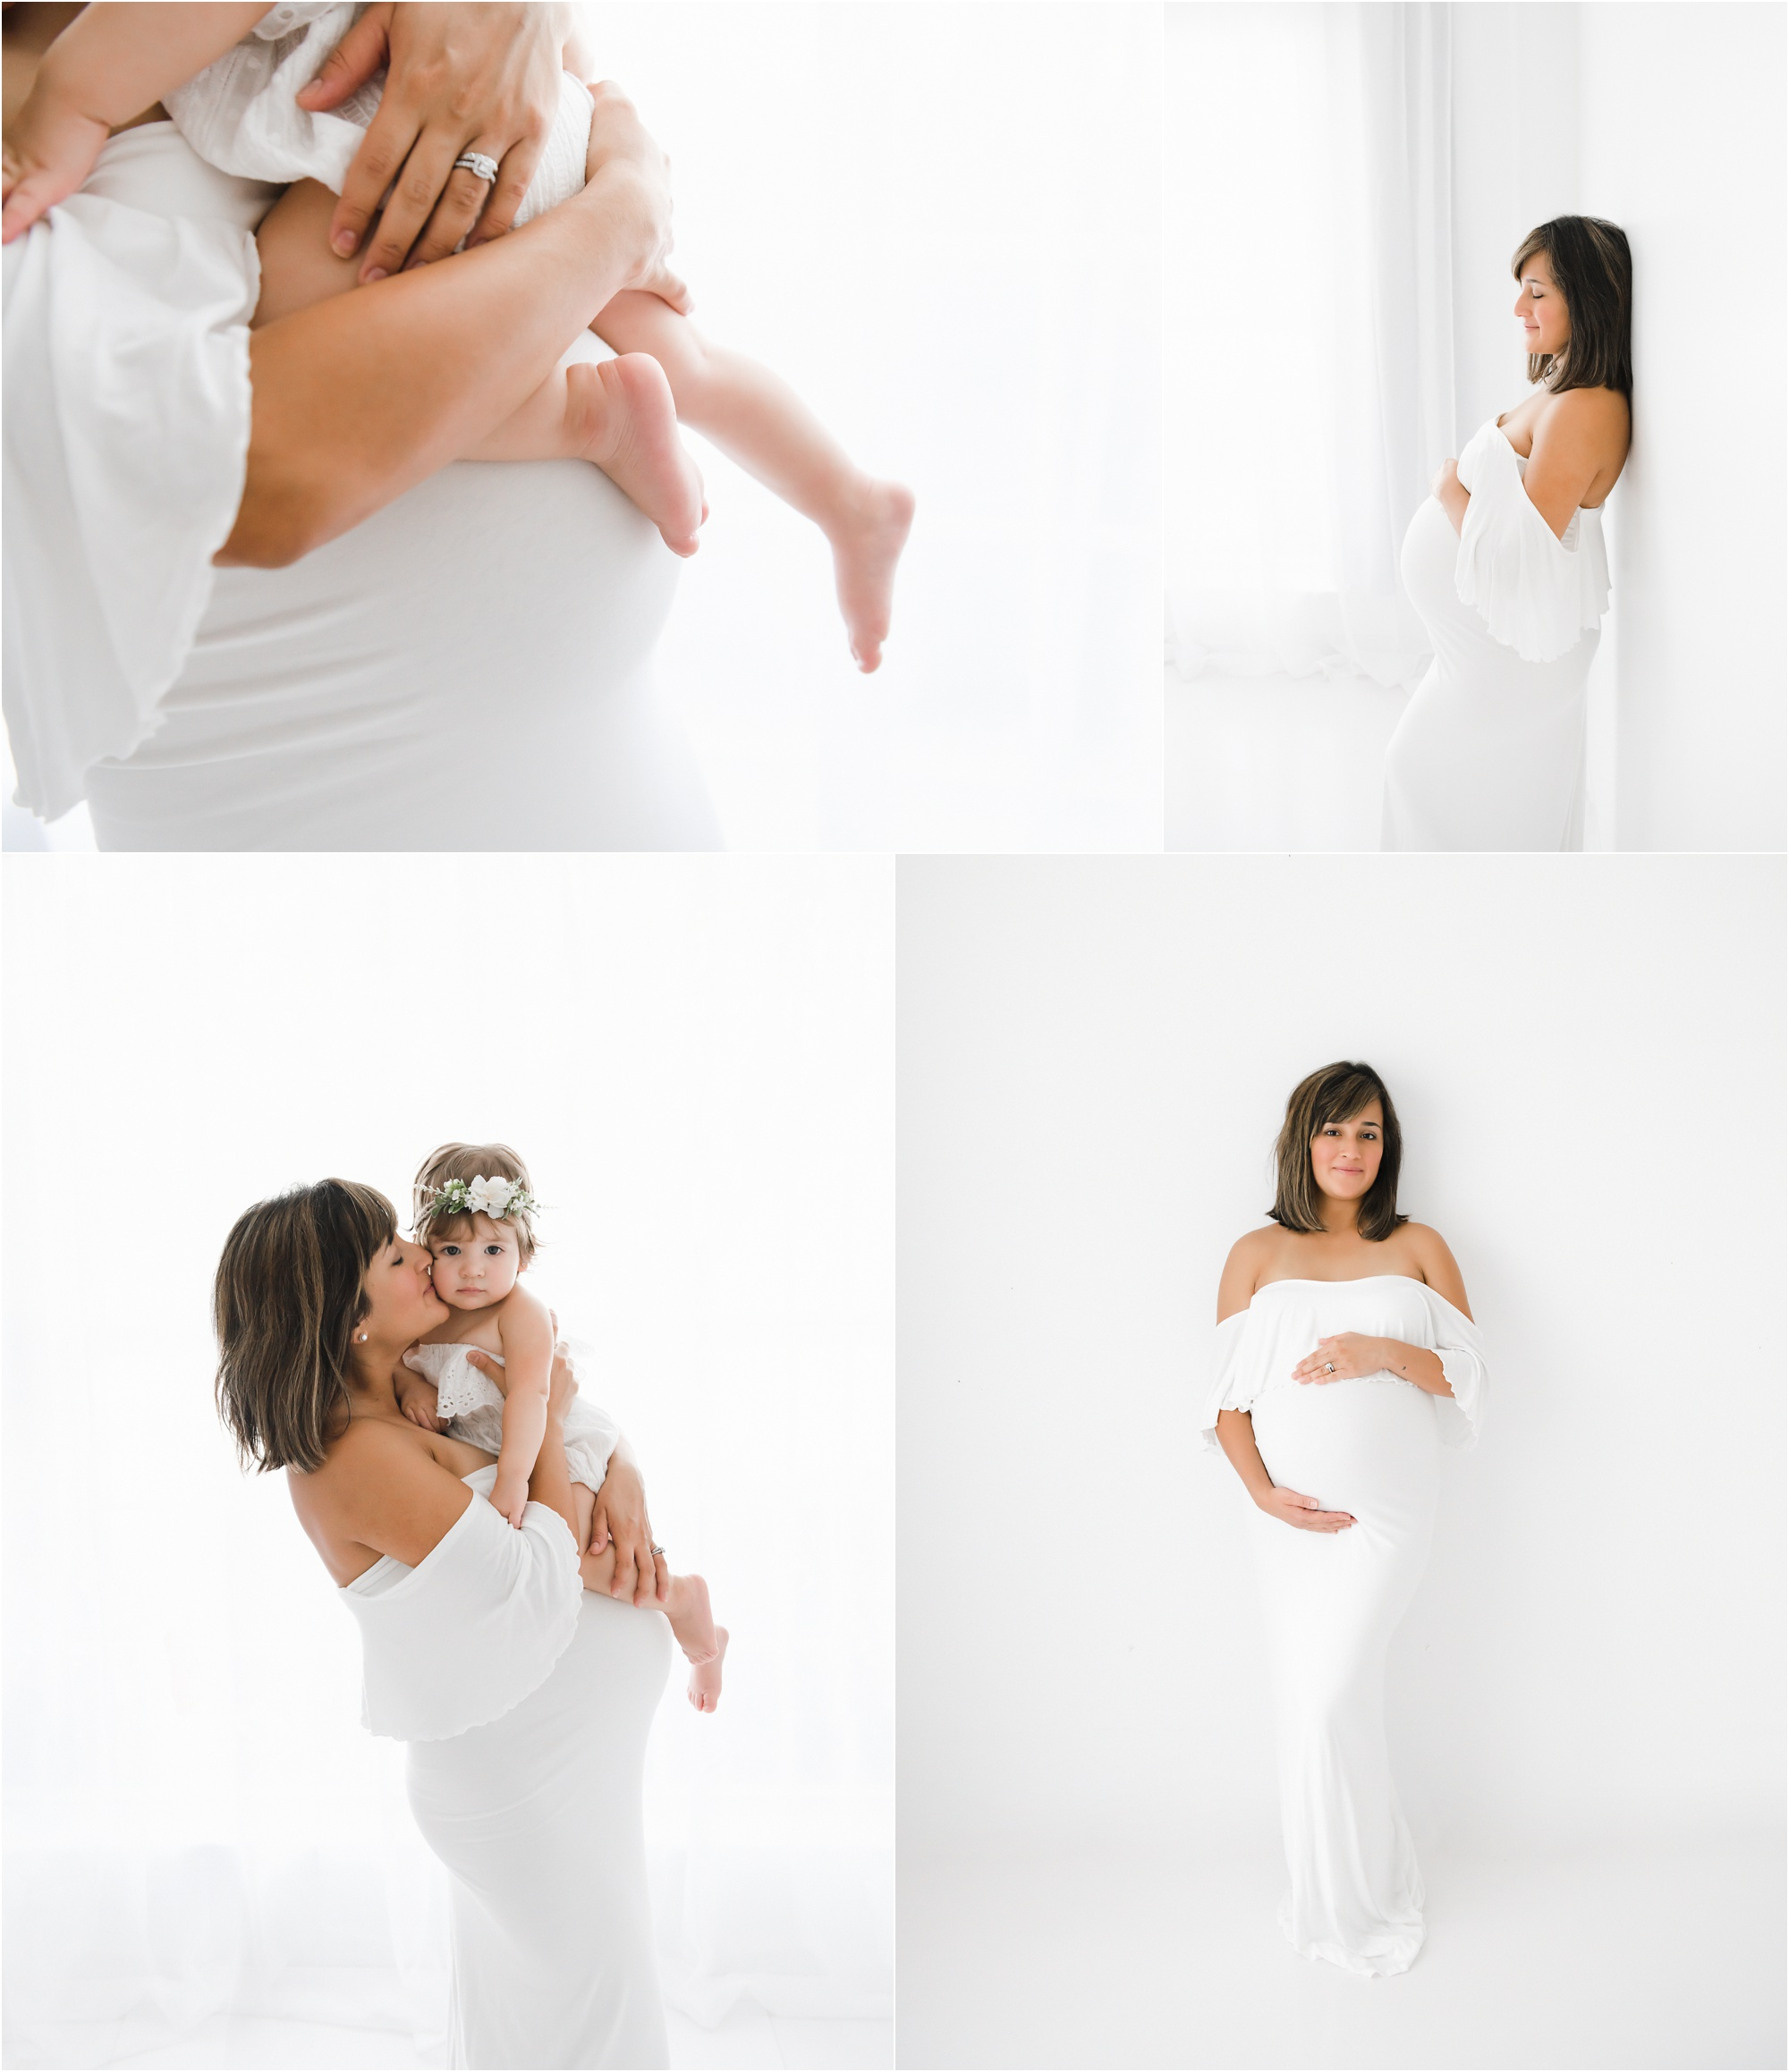 professional-pregnant-belly-pictures-with child-savannah-georgia-andrea-krey-photography